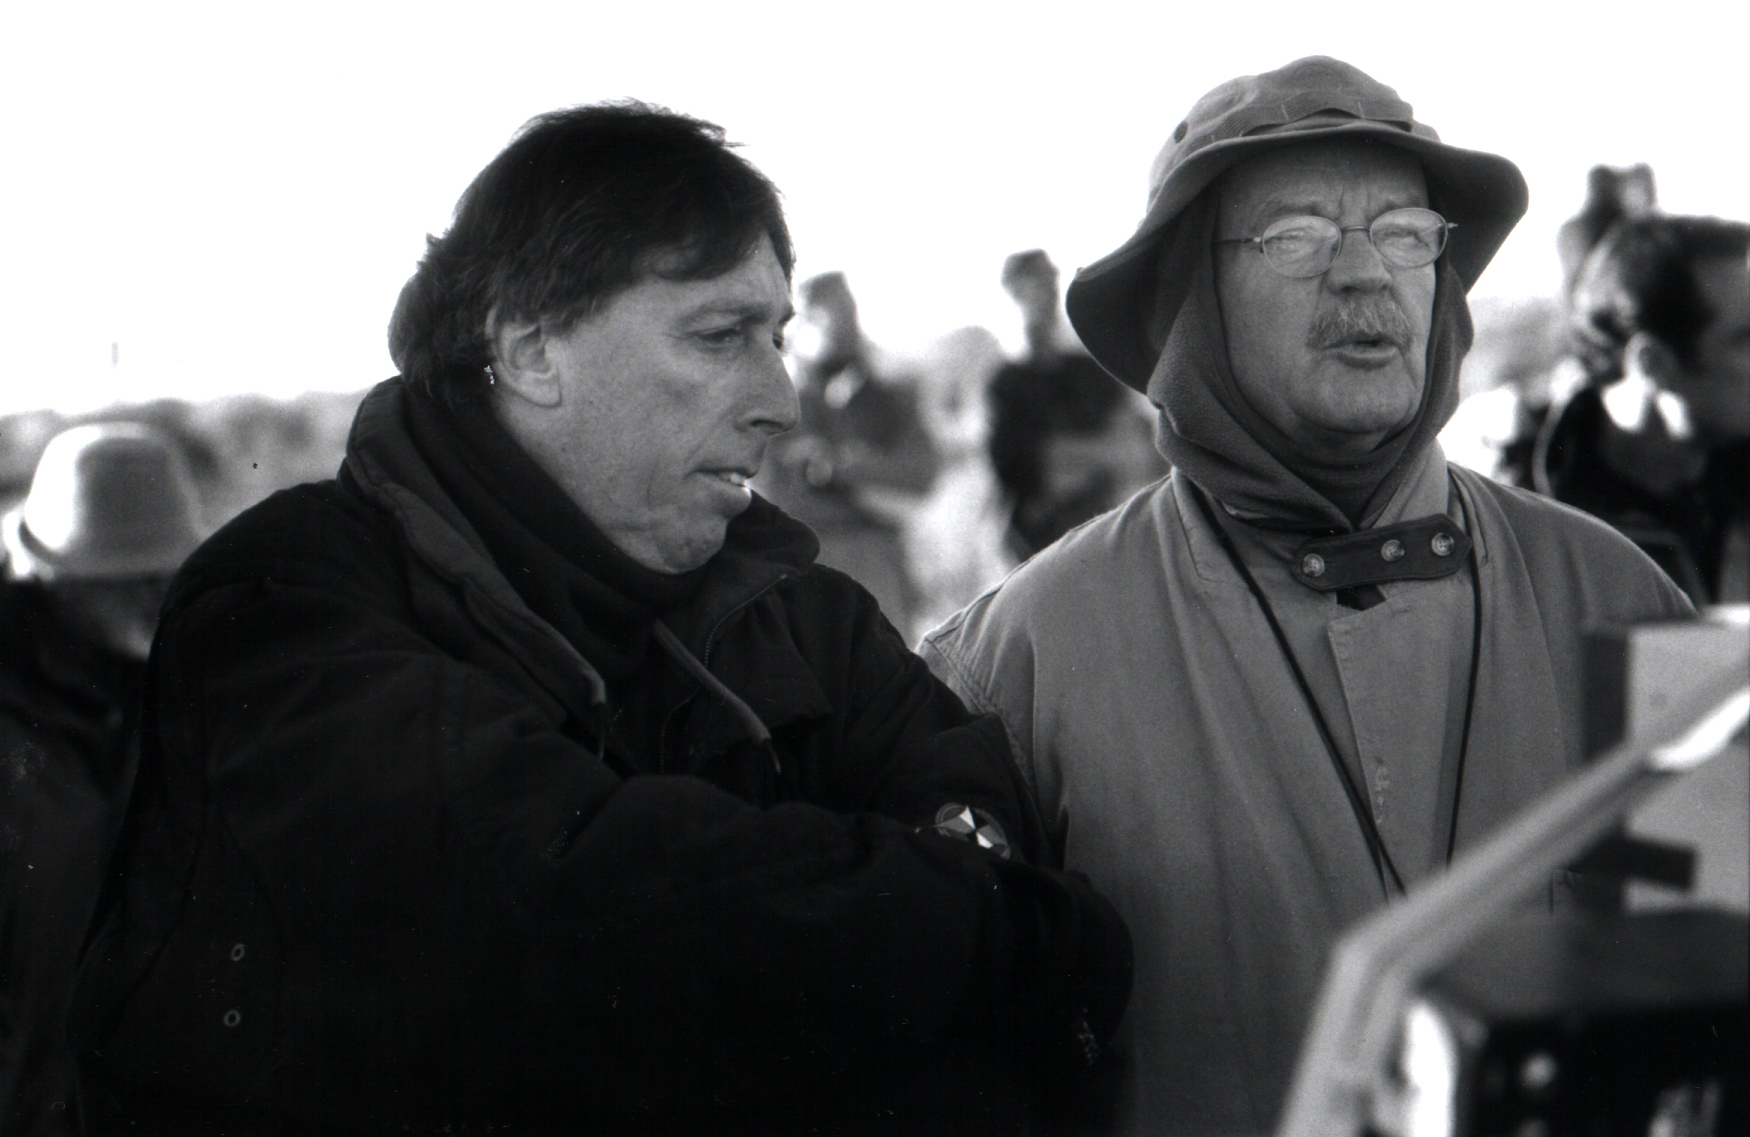 Filming the sci-fi comedy Evolution (2001) with director Ivan Reitman.